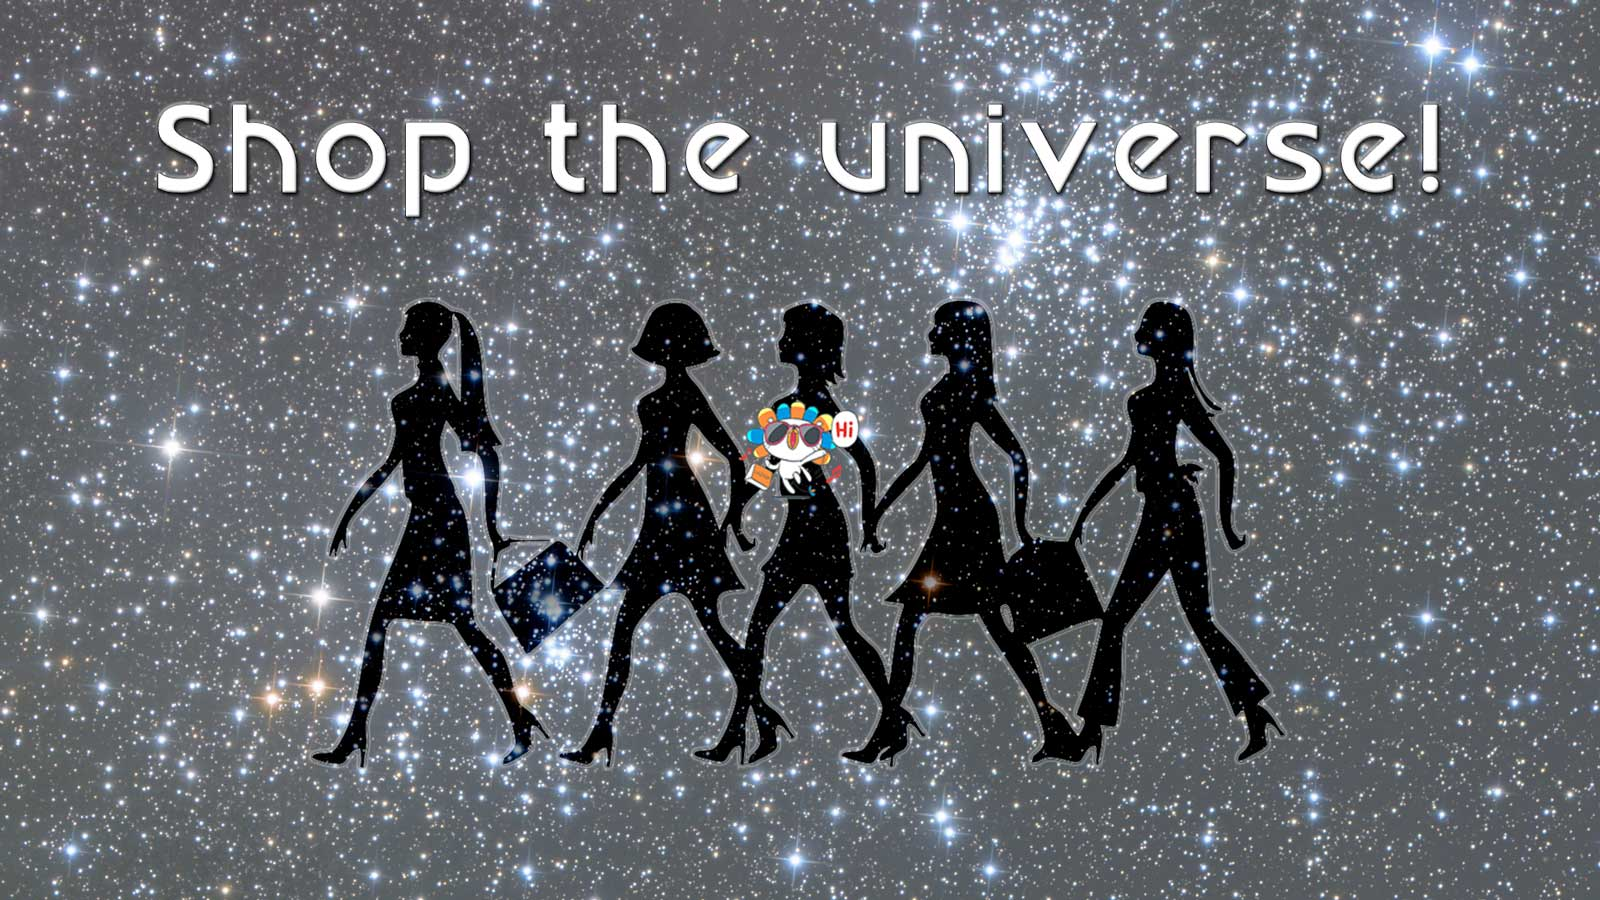 Shop the universe today!